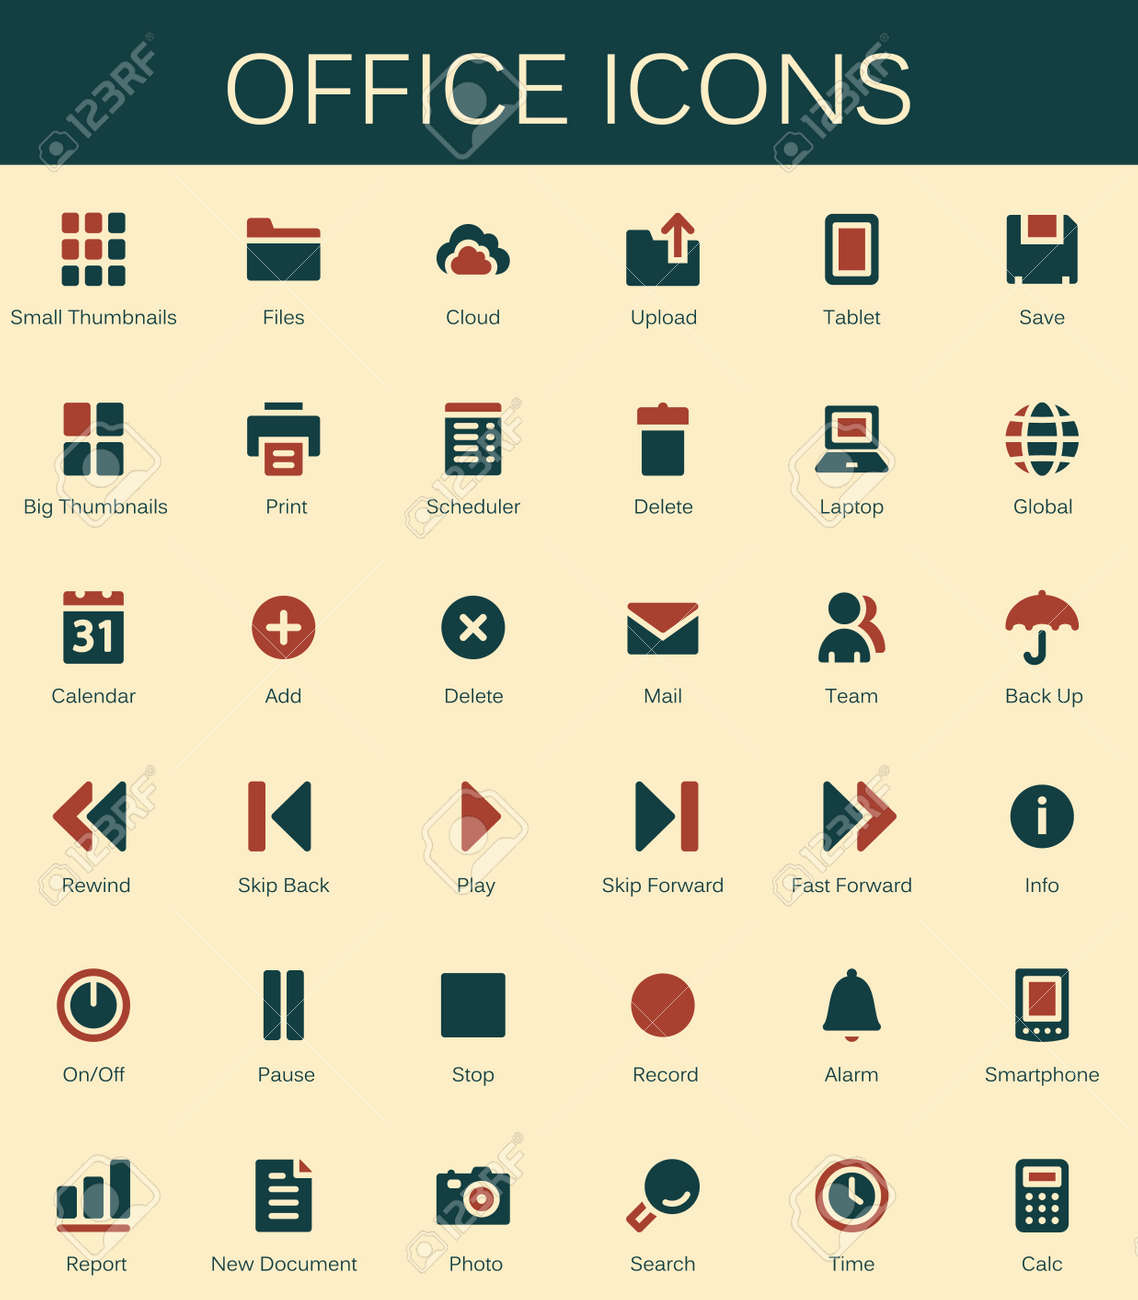 Back Office Services And Documents Tools Icons. Modern Vector Pictograms  Stock Vector   67838971